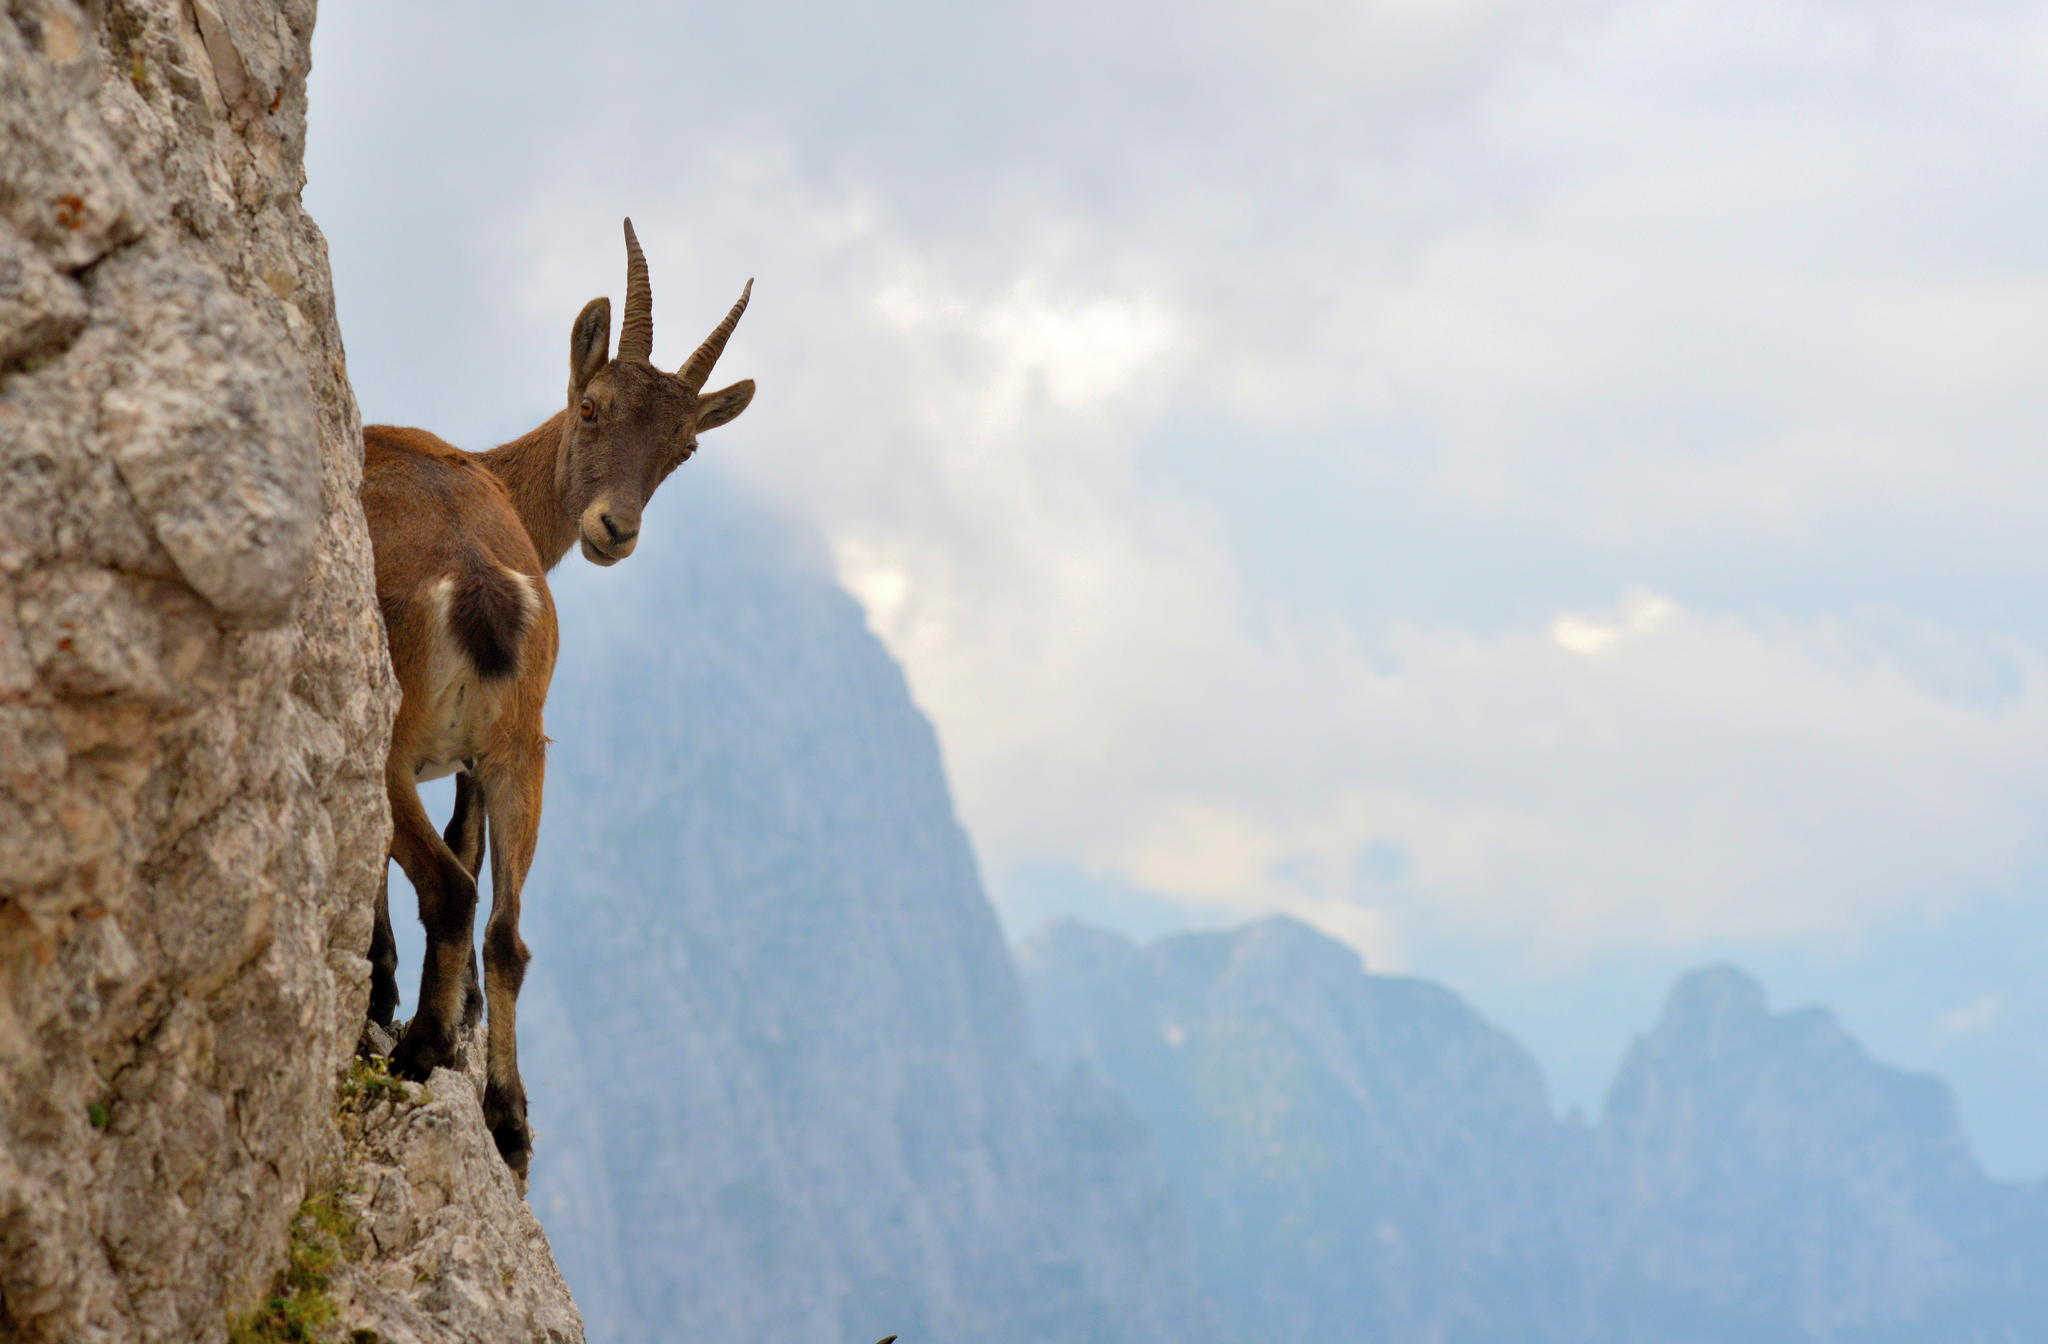 This Heart-Stopping Photo Captures An Ibex On The Edge Of A Mountain